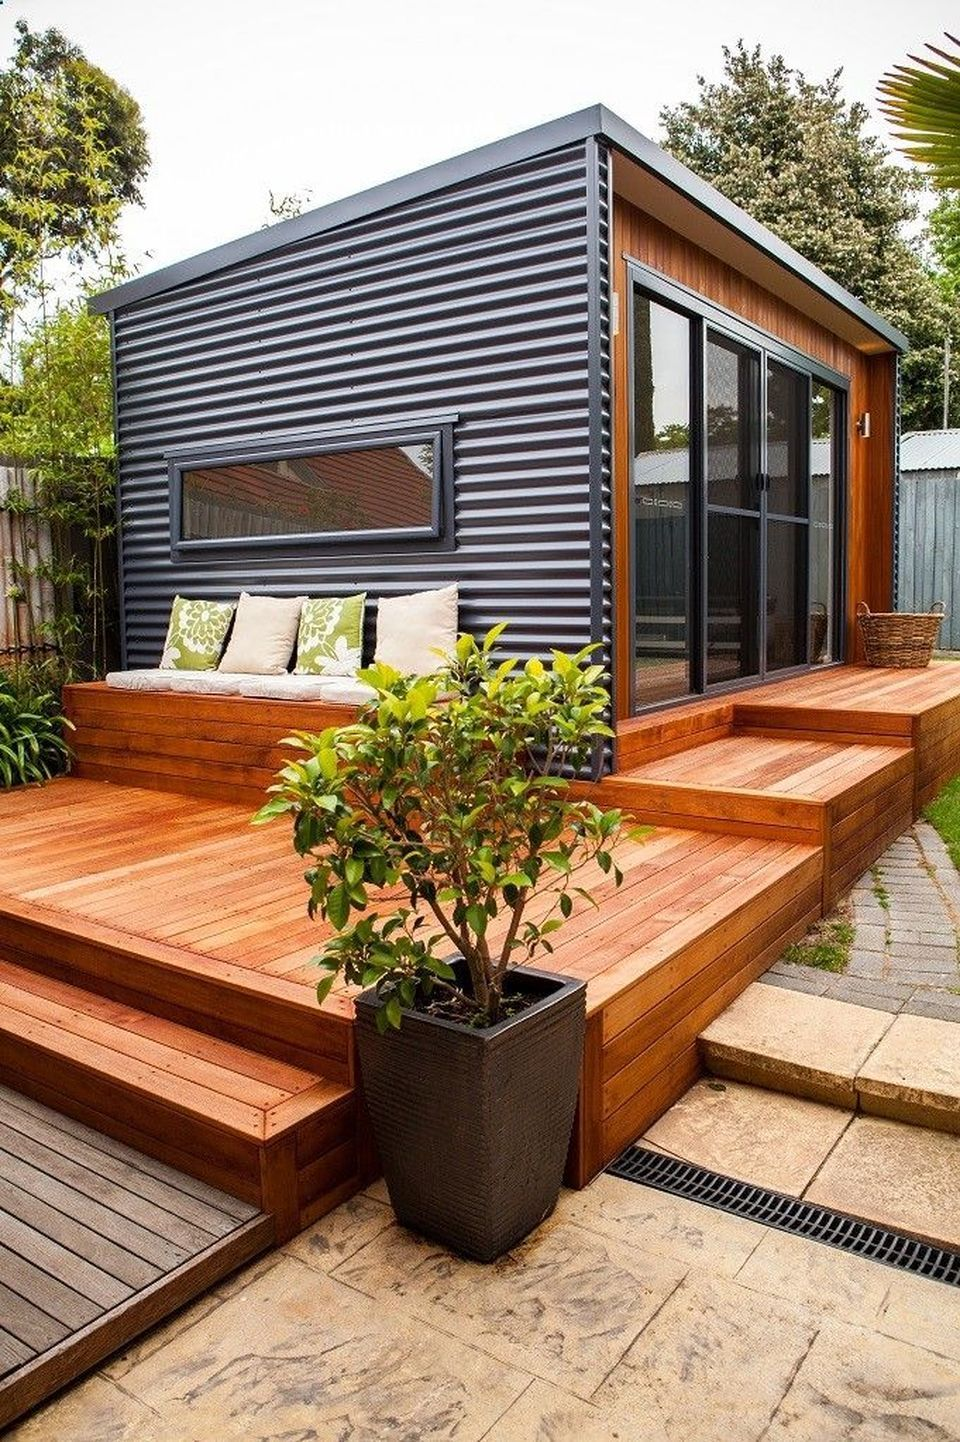 Best shipping container house design ideas 69 - Rockindeco -   15 garden design Architecture shipping containers ideas